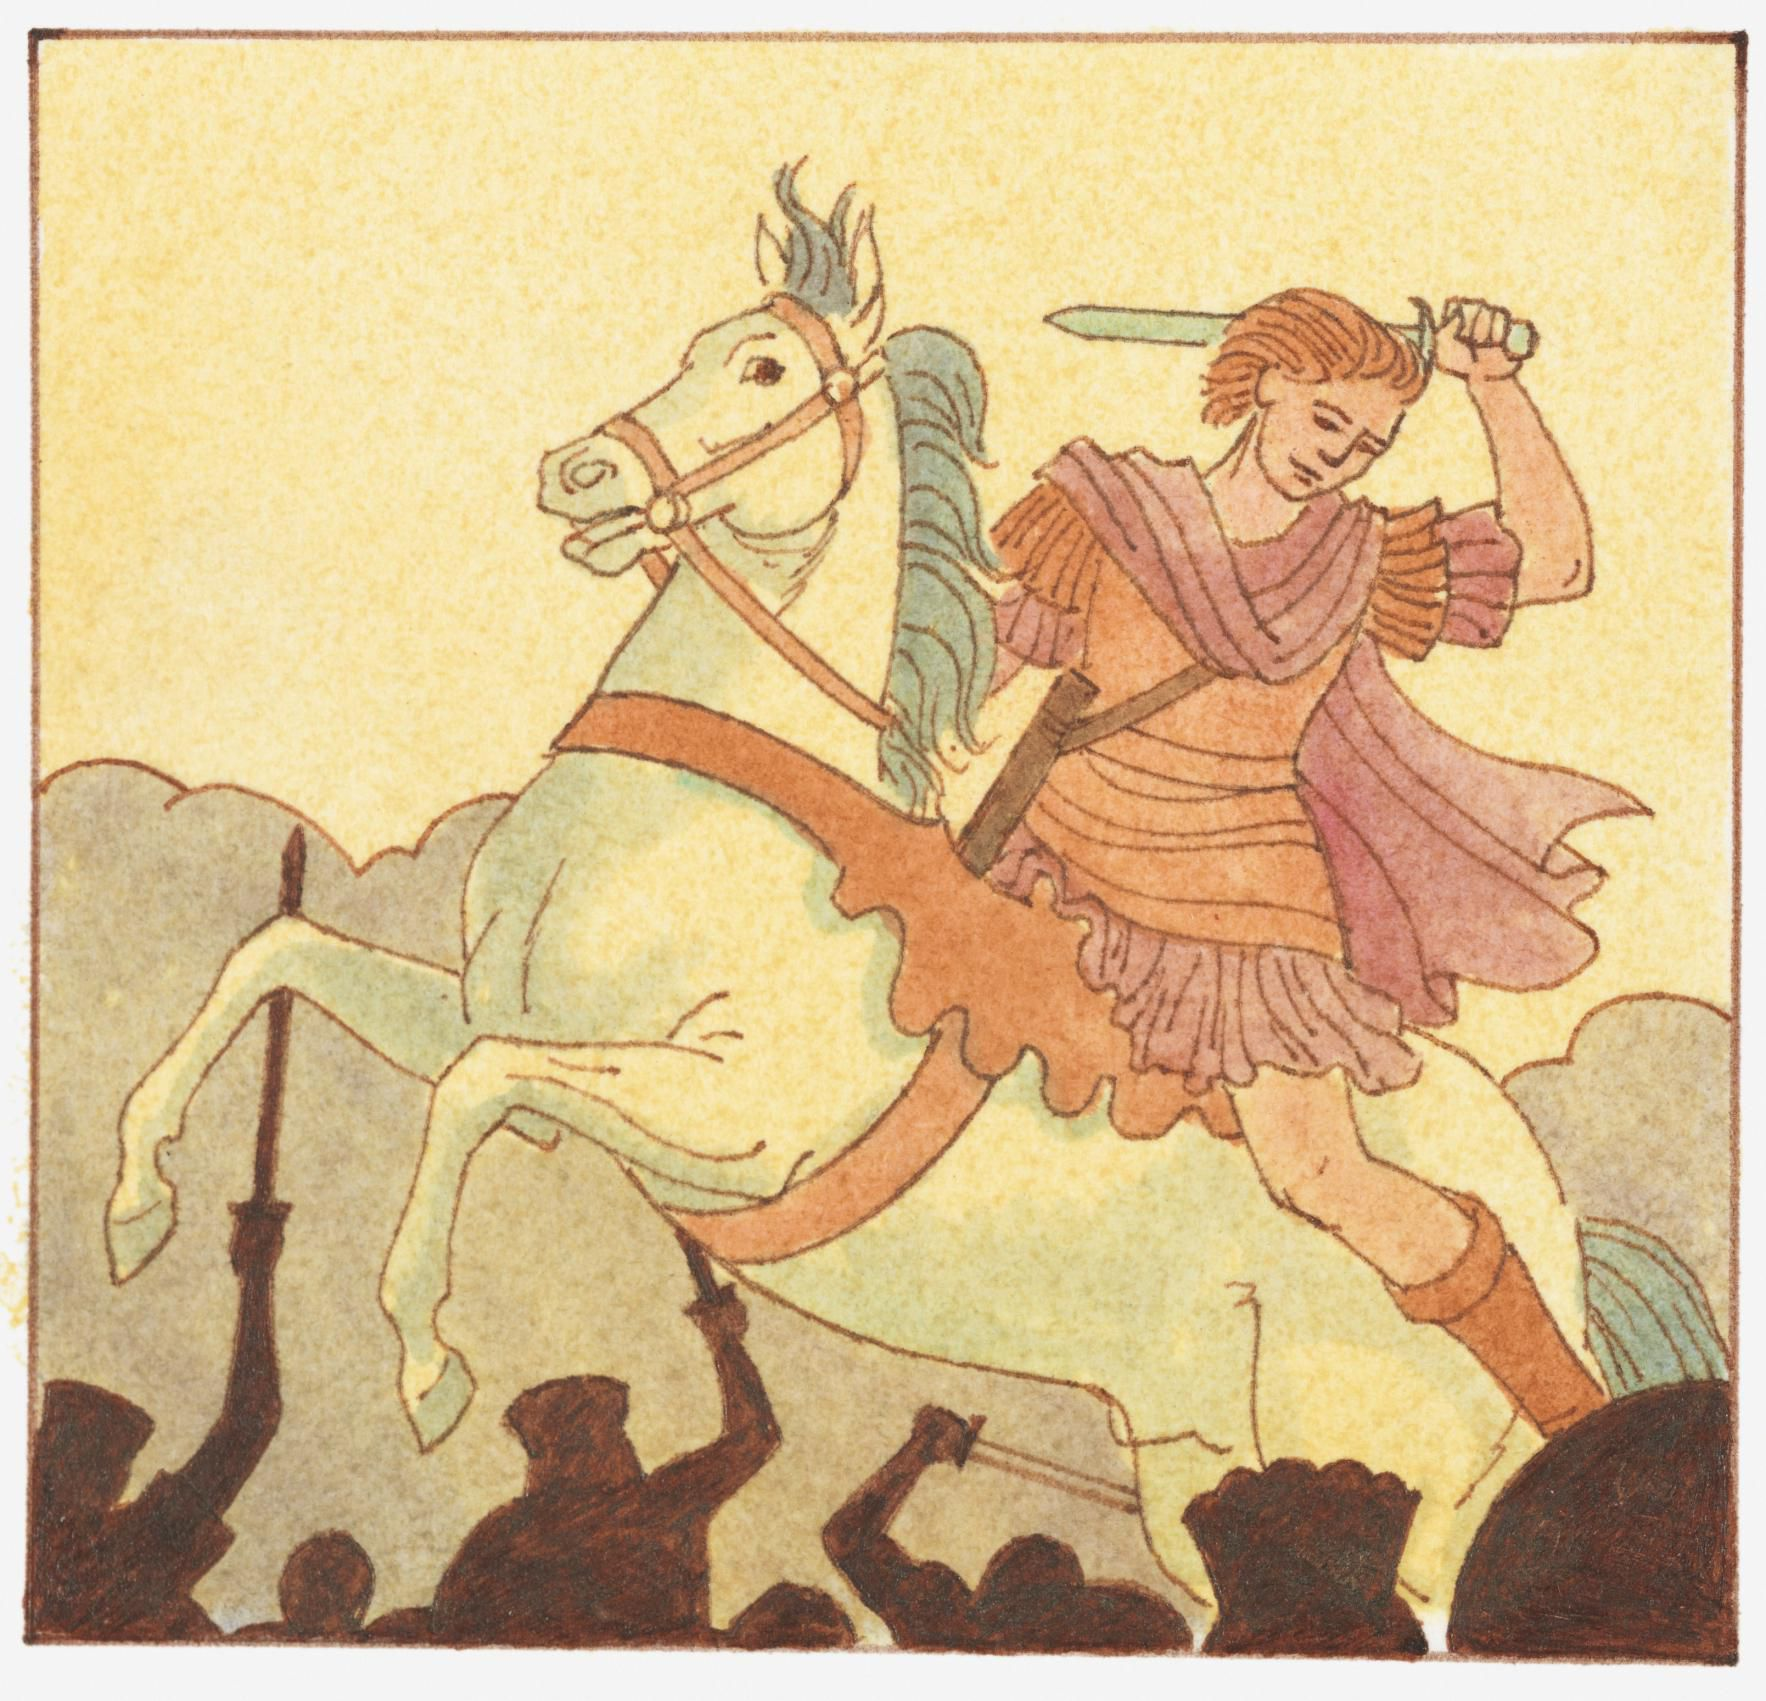 essays alexander the great a true hero This essay will have the students choose a side and defend whether or not alexander the great was a hero or a villain what you get: 1 a short read explaining why some people will call alexander a hero and why others will call him a villain.